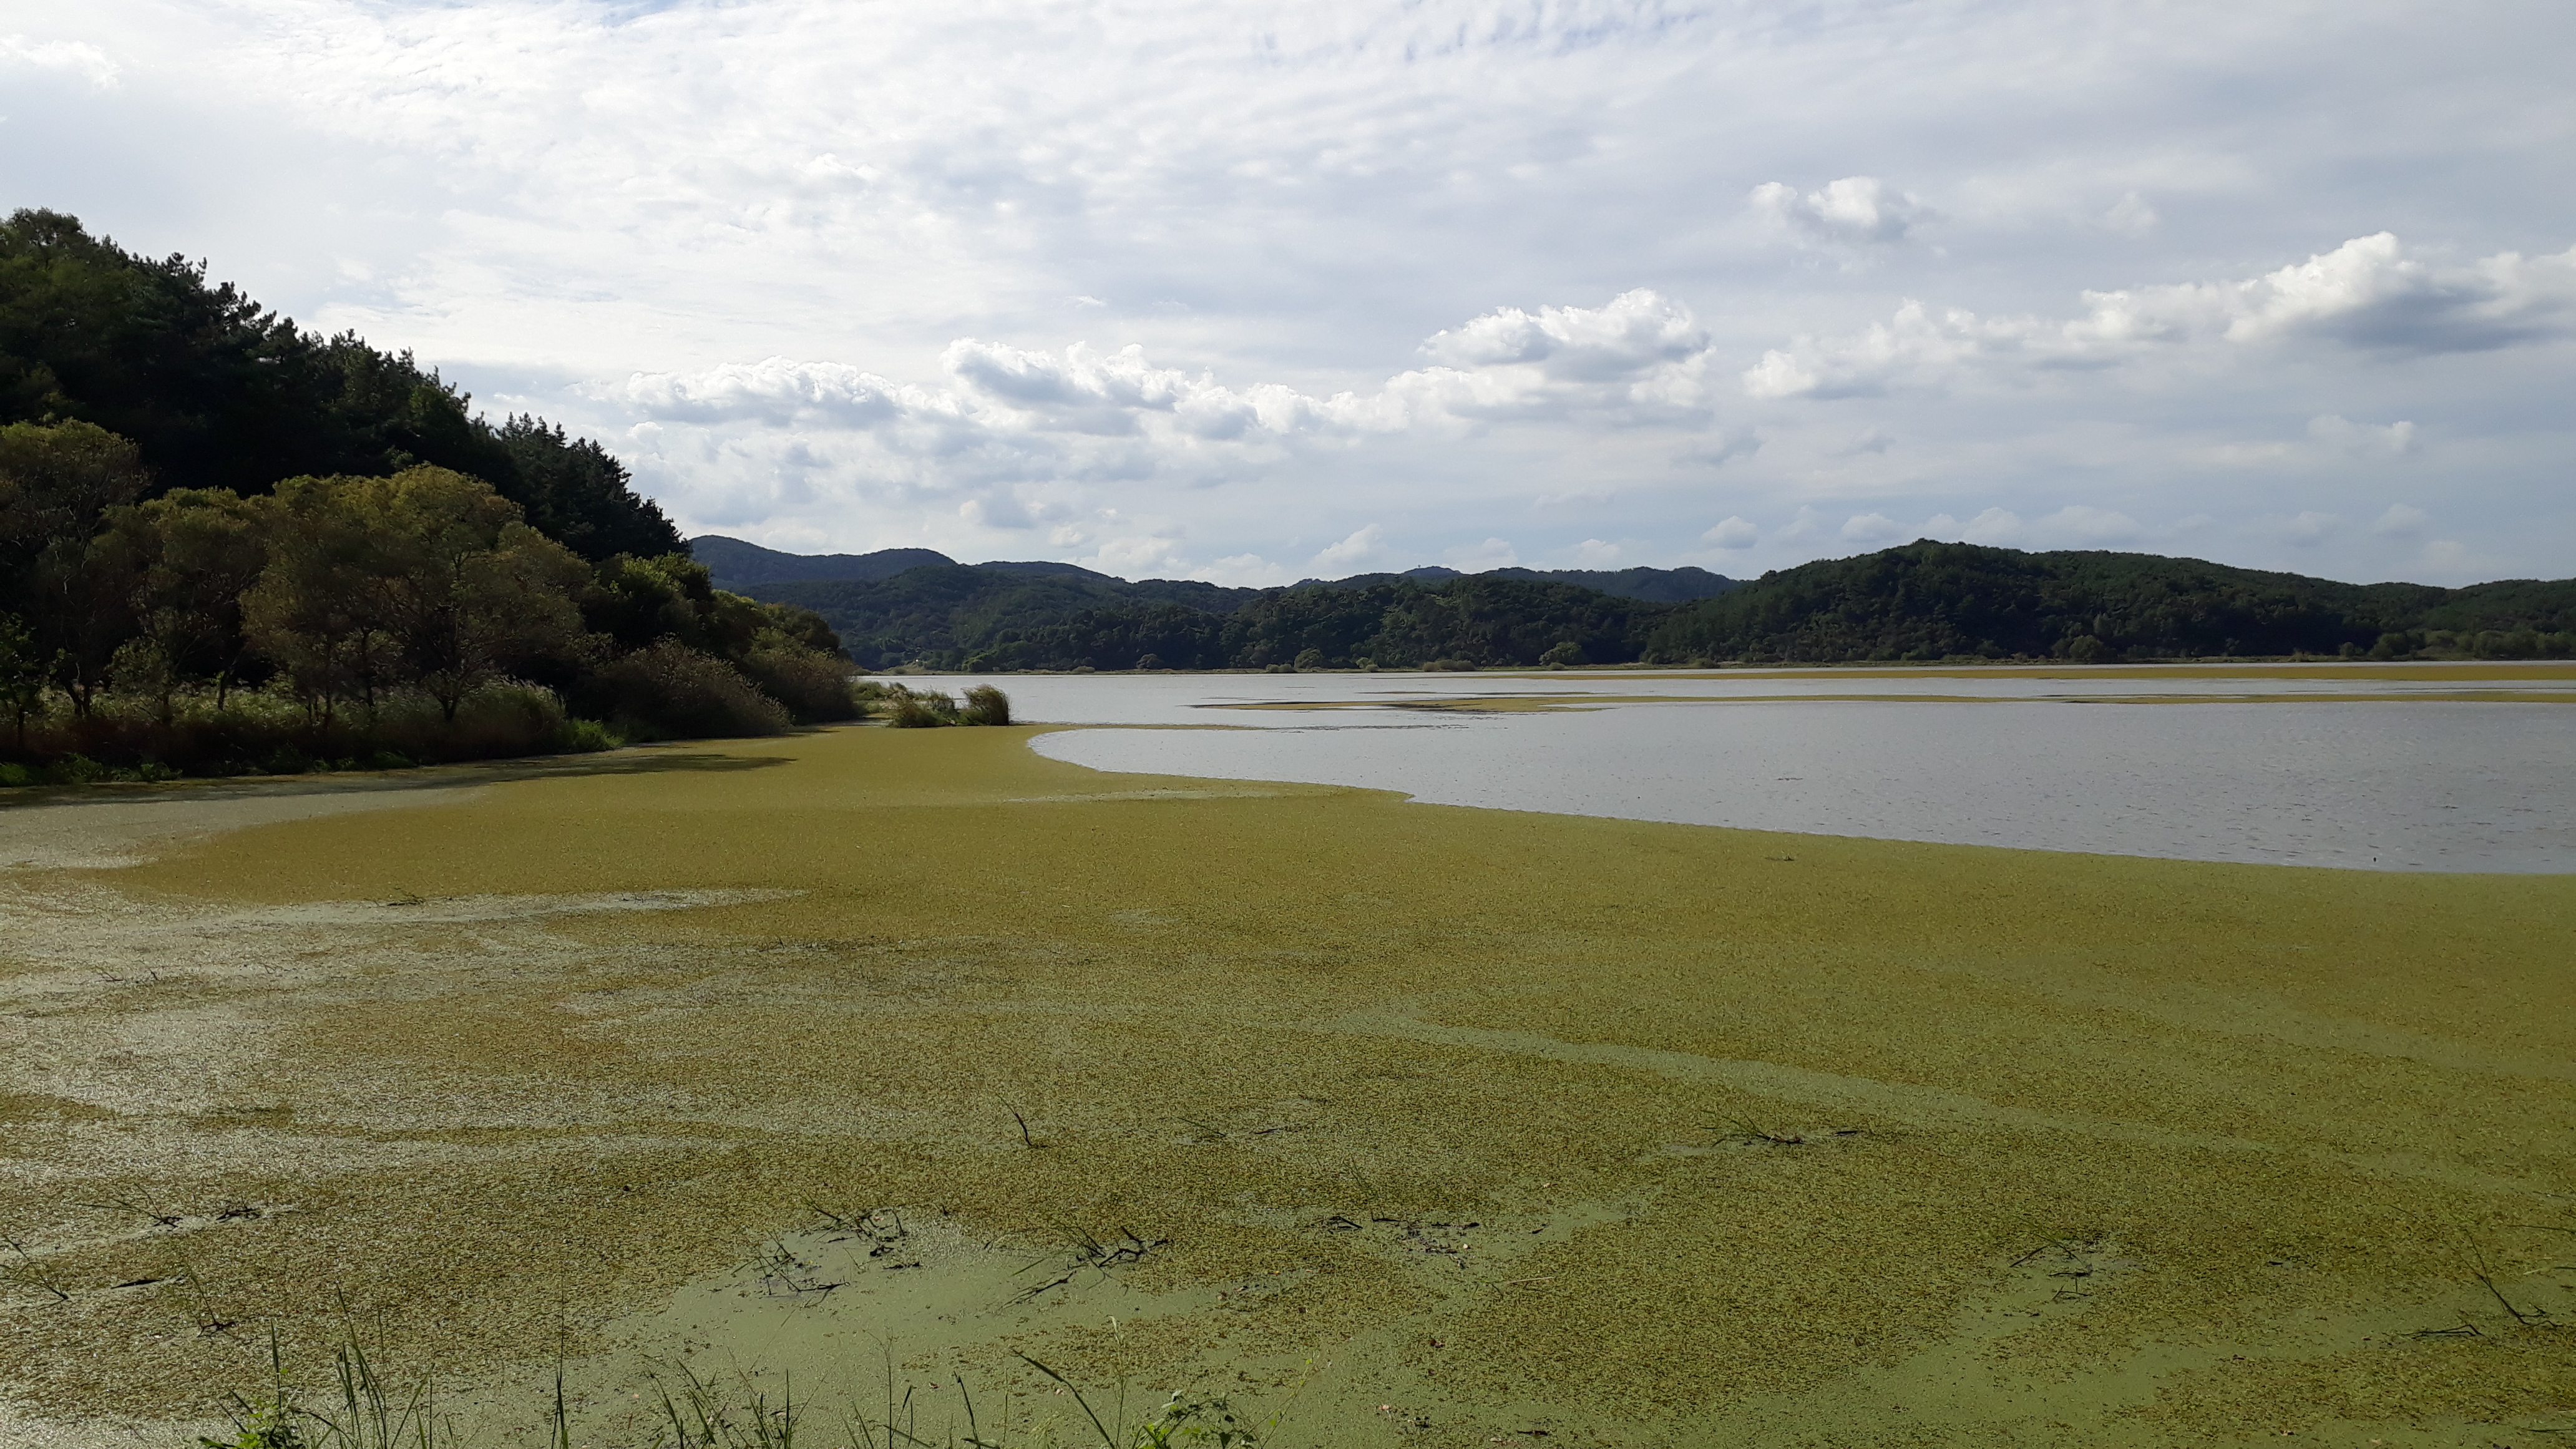 Free download high resolution image - free image free photo free stock image public domain picture -Upo Wetland in Changnyeong Korea